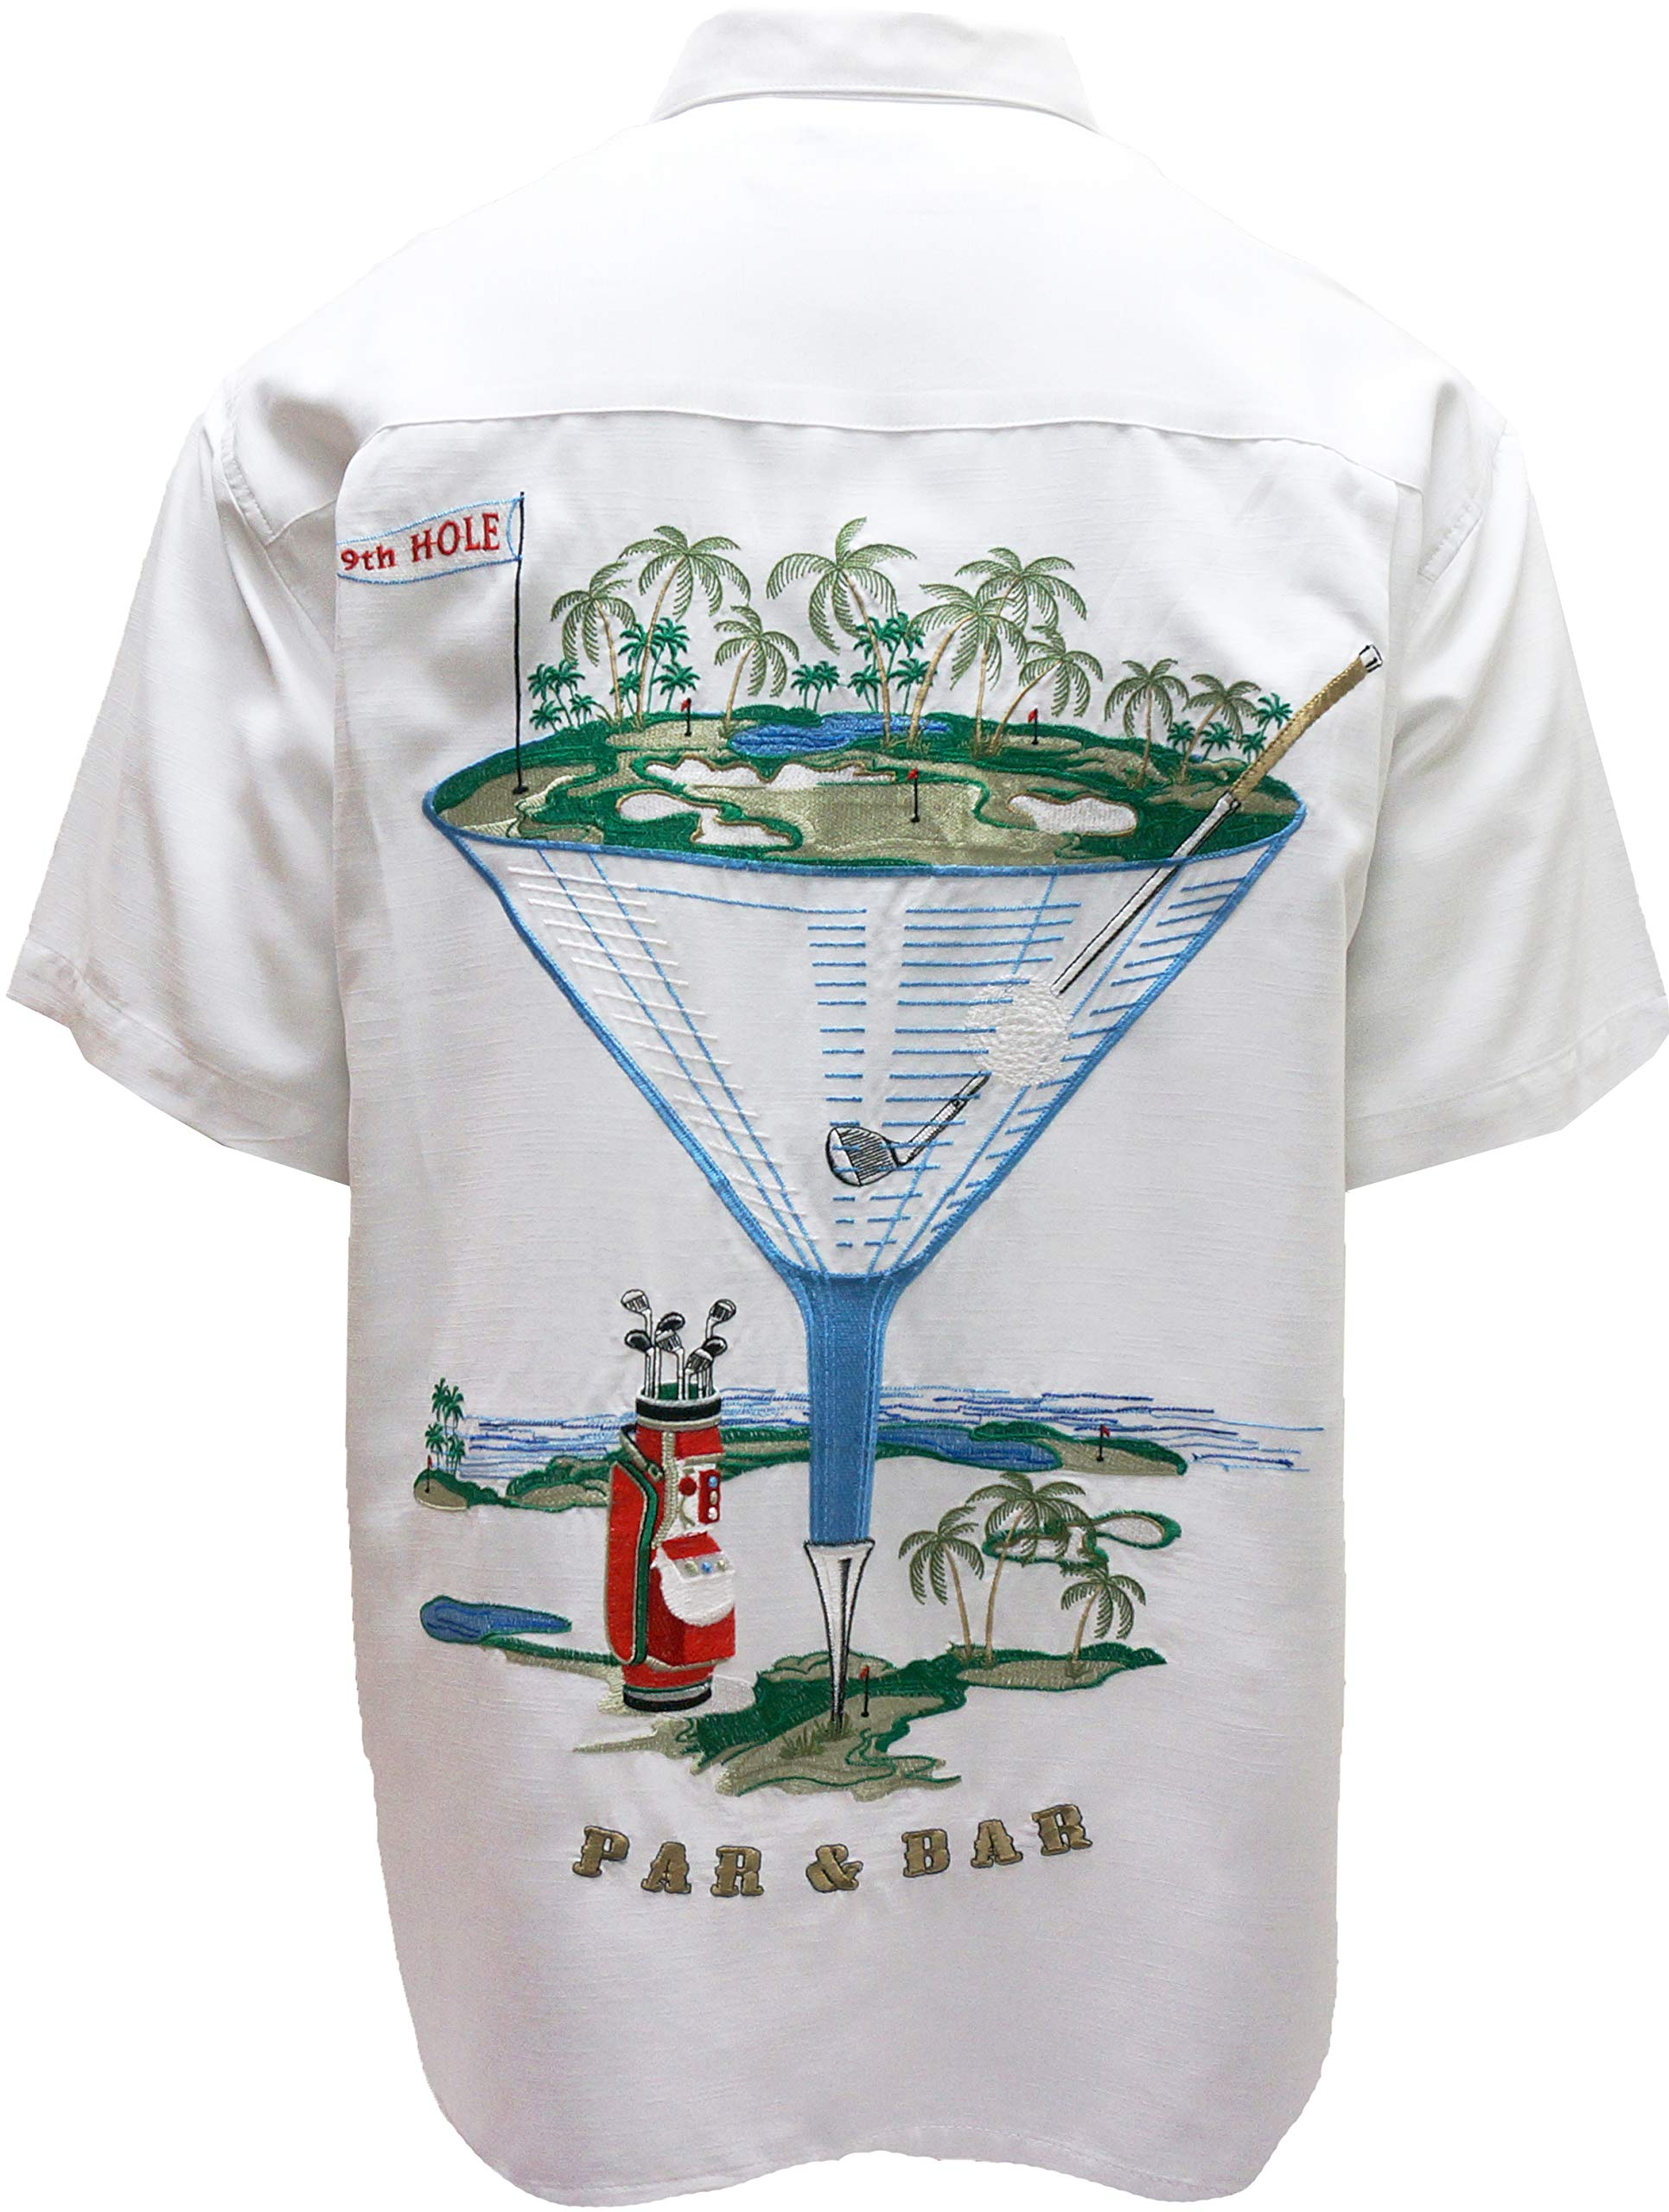 Bamboo Cay Men's Embroidered Golf Martini Design Camp Shirt Short Sleeve Button Down Shirt